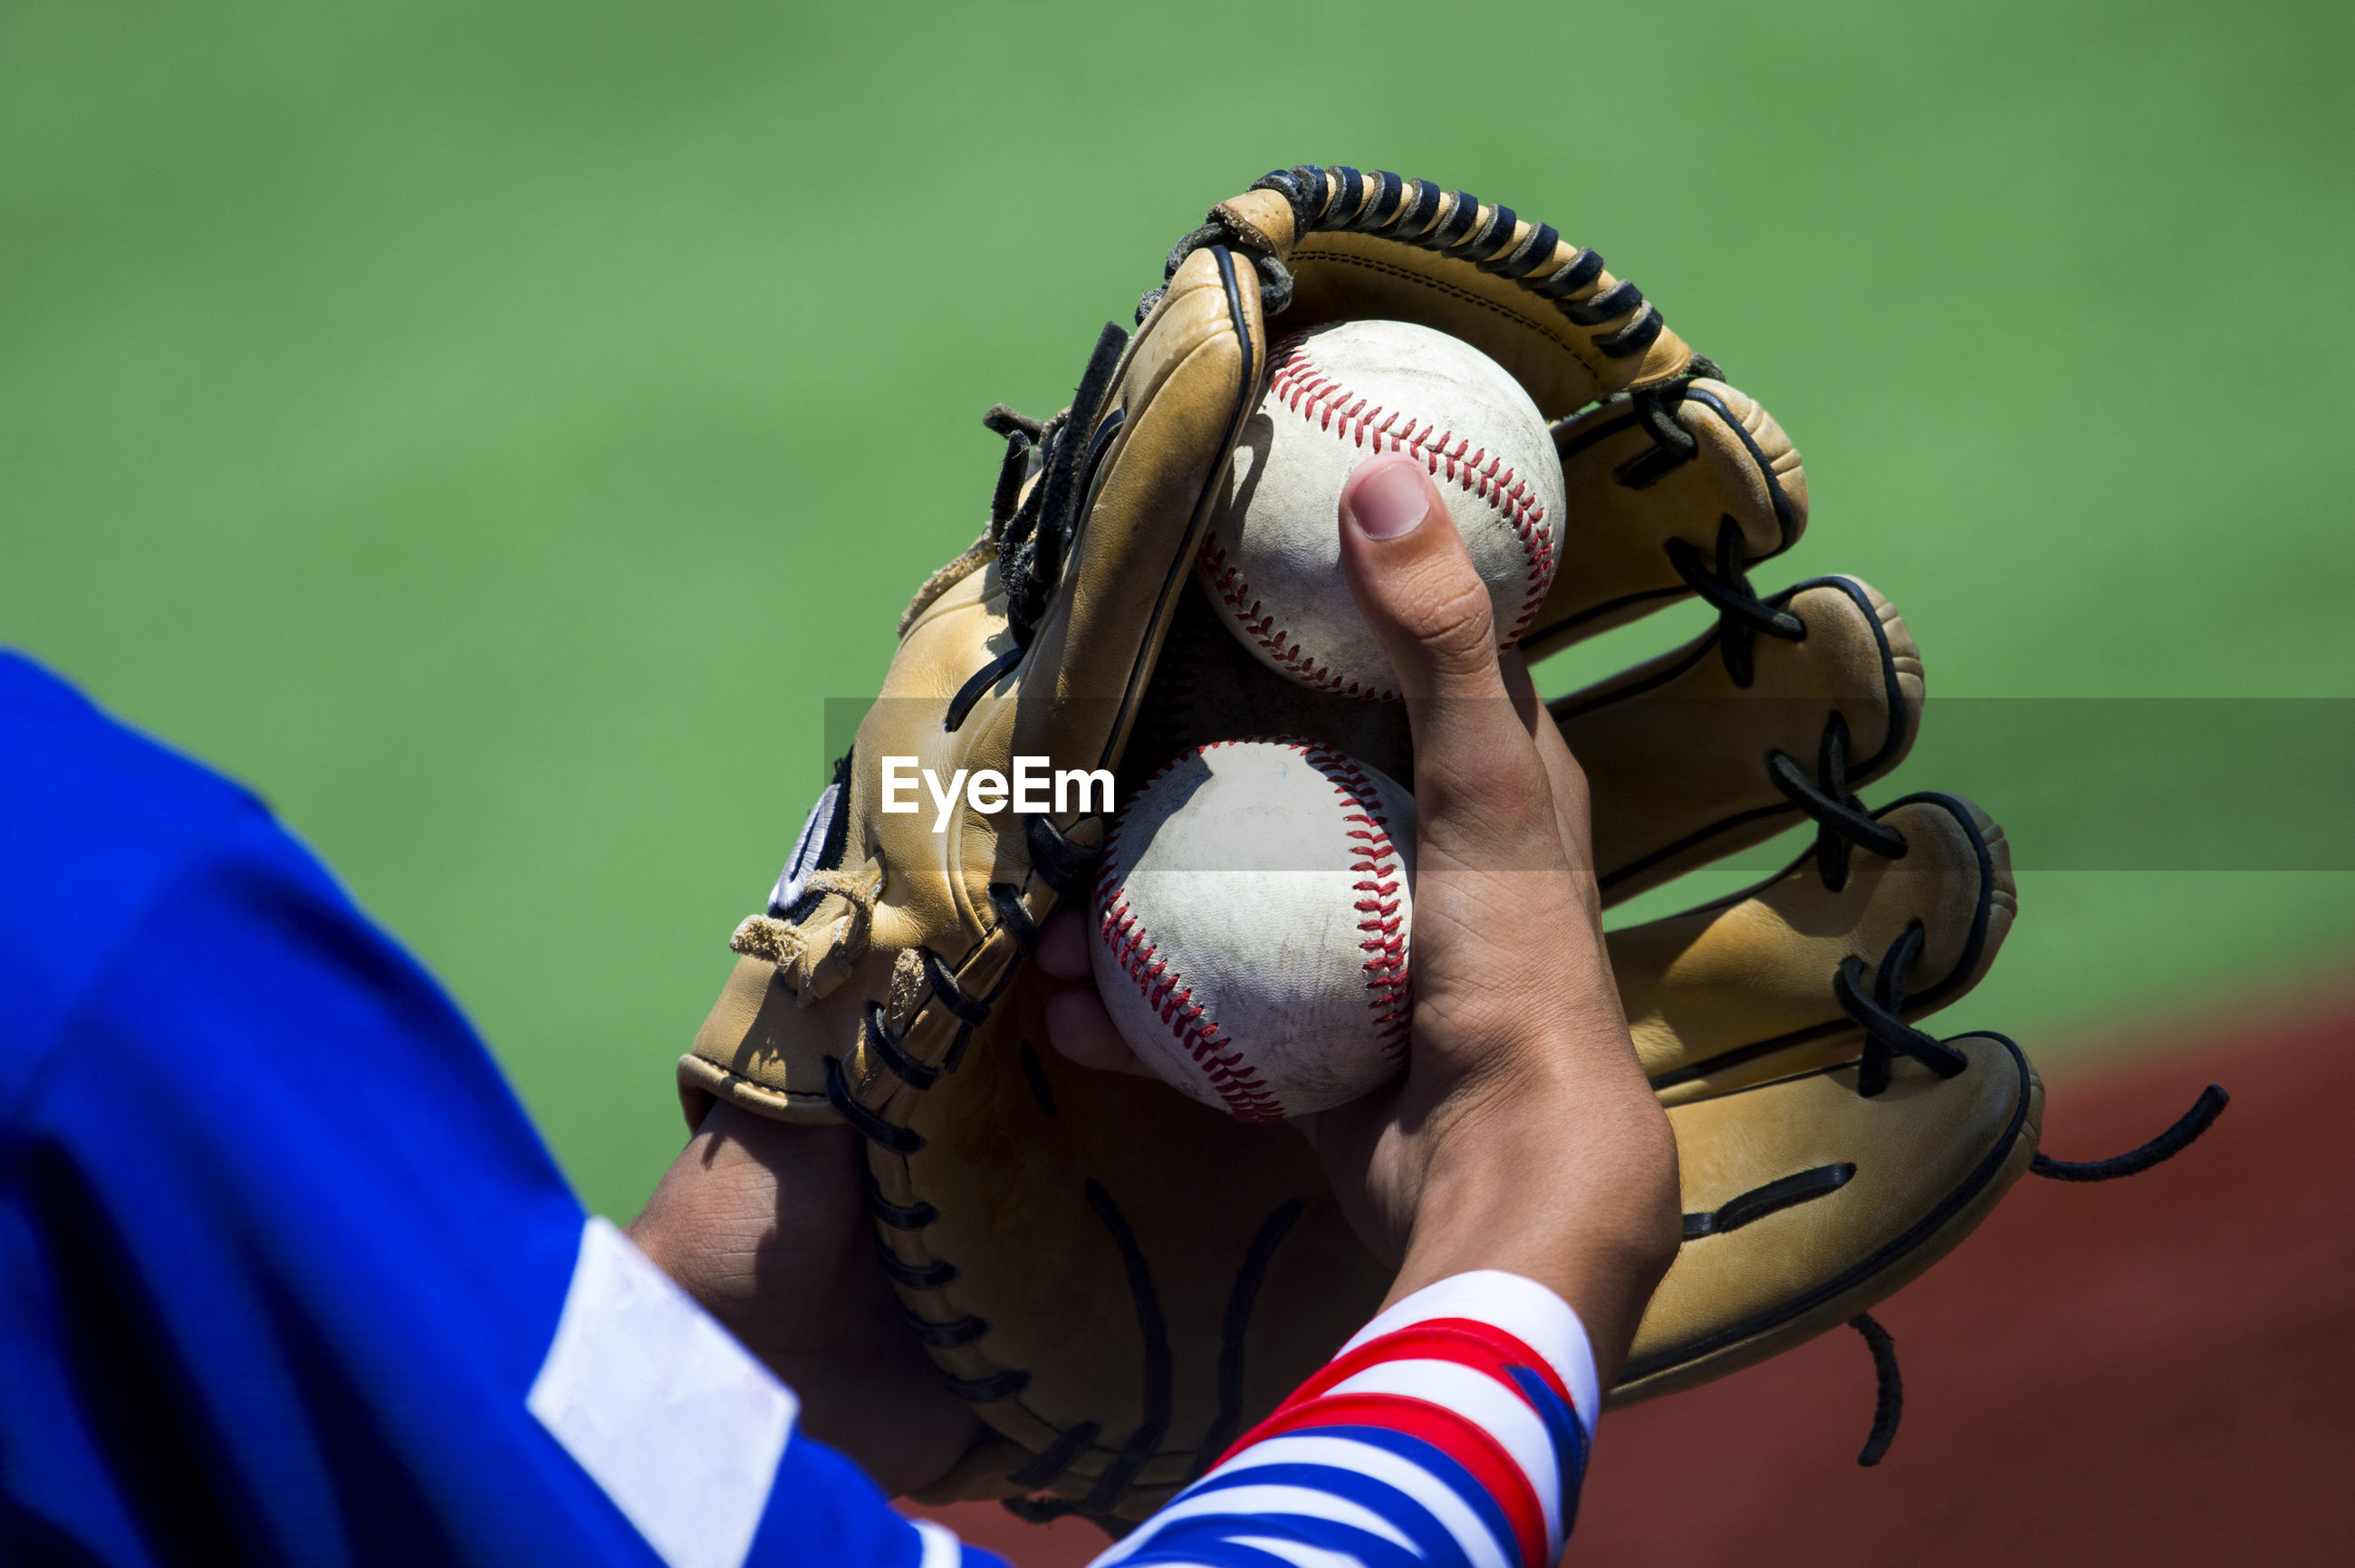 Midsection of baseball player holding glove and balls